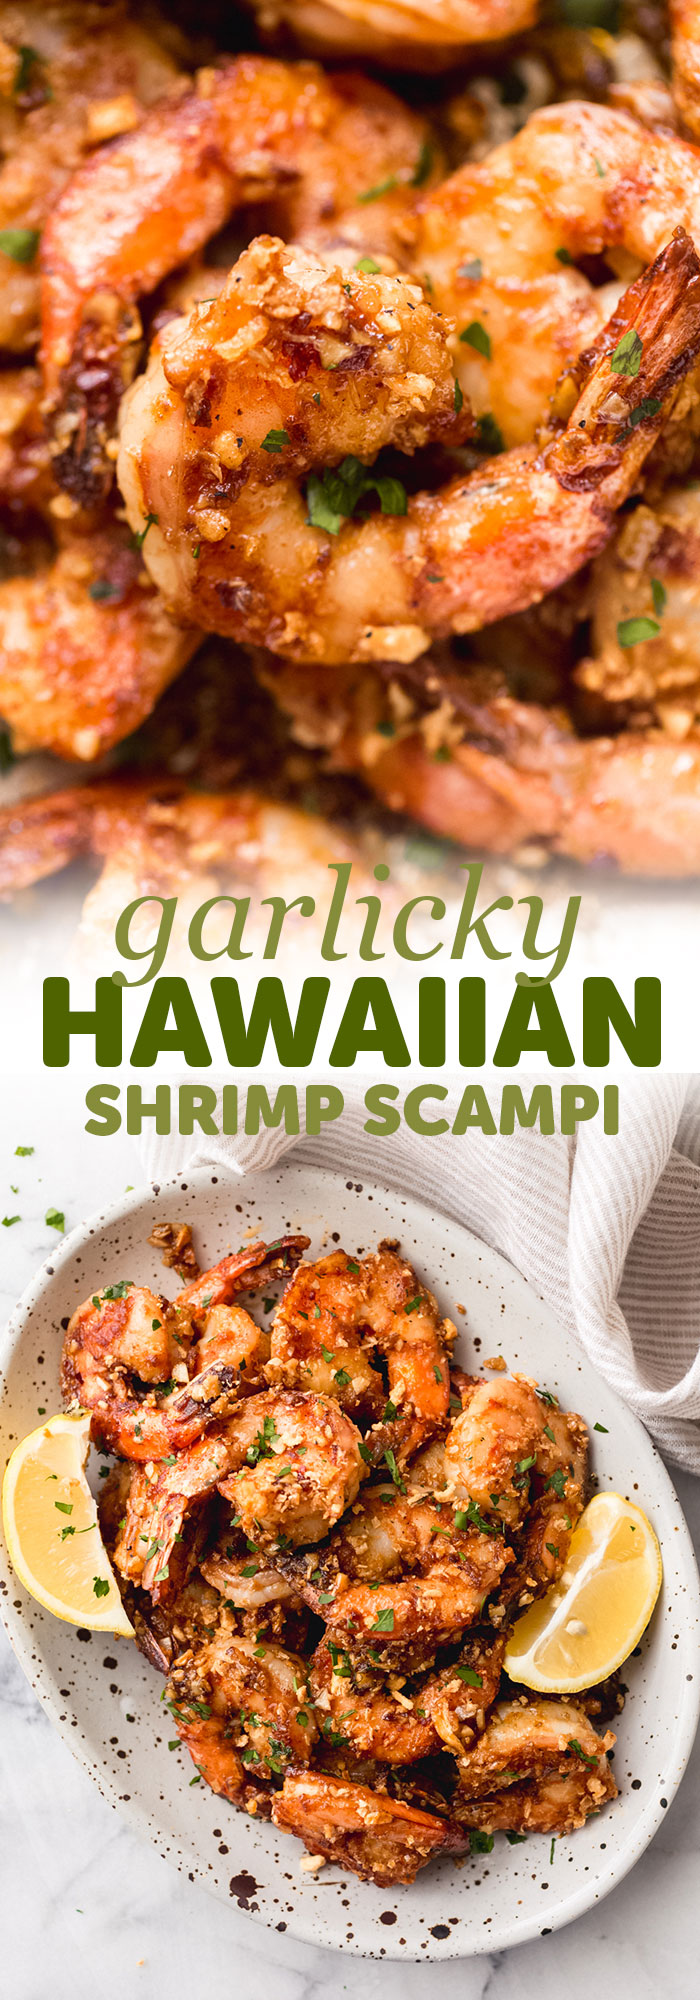 Garlicky Hawaiian Shrimp Scampi - a Hawaiian take on the garlic shrimp scampi! Loaded with so much umami flavor, these are sure to be a hit! #garlicshrimpscampi #shrimpscampi #garlicbuttershrimp #hawaiianshrimpscampi #hawaiianscampi #shrimp | Llittlespicejar.com